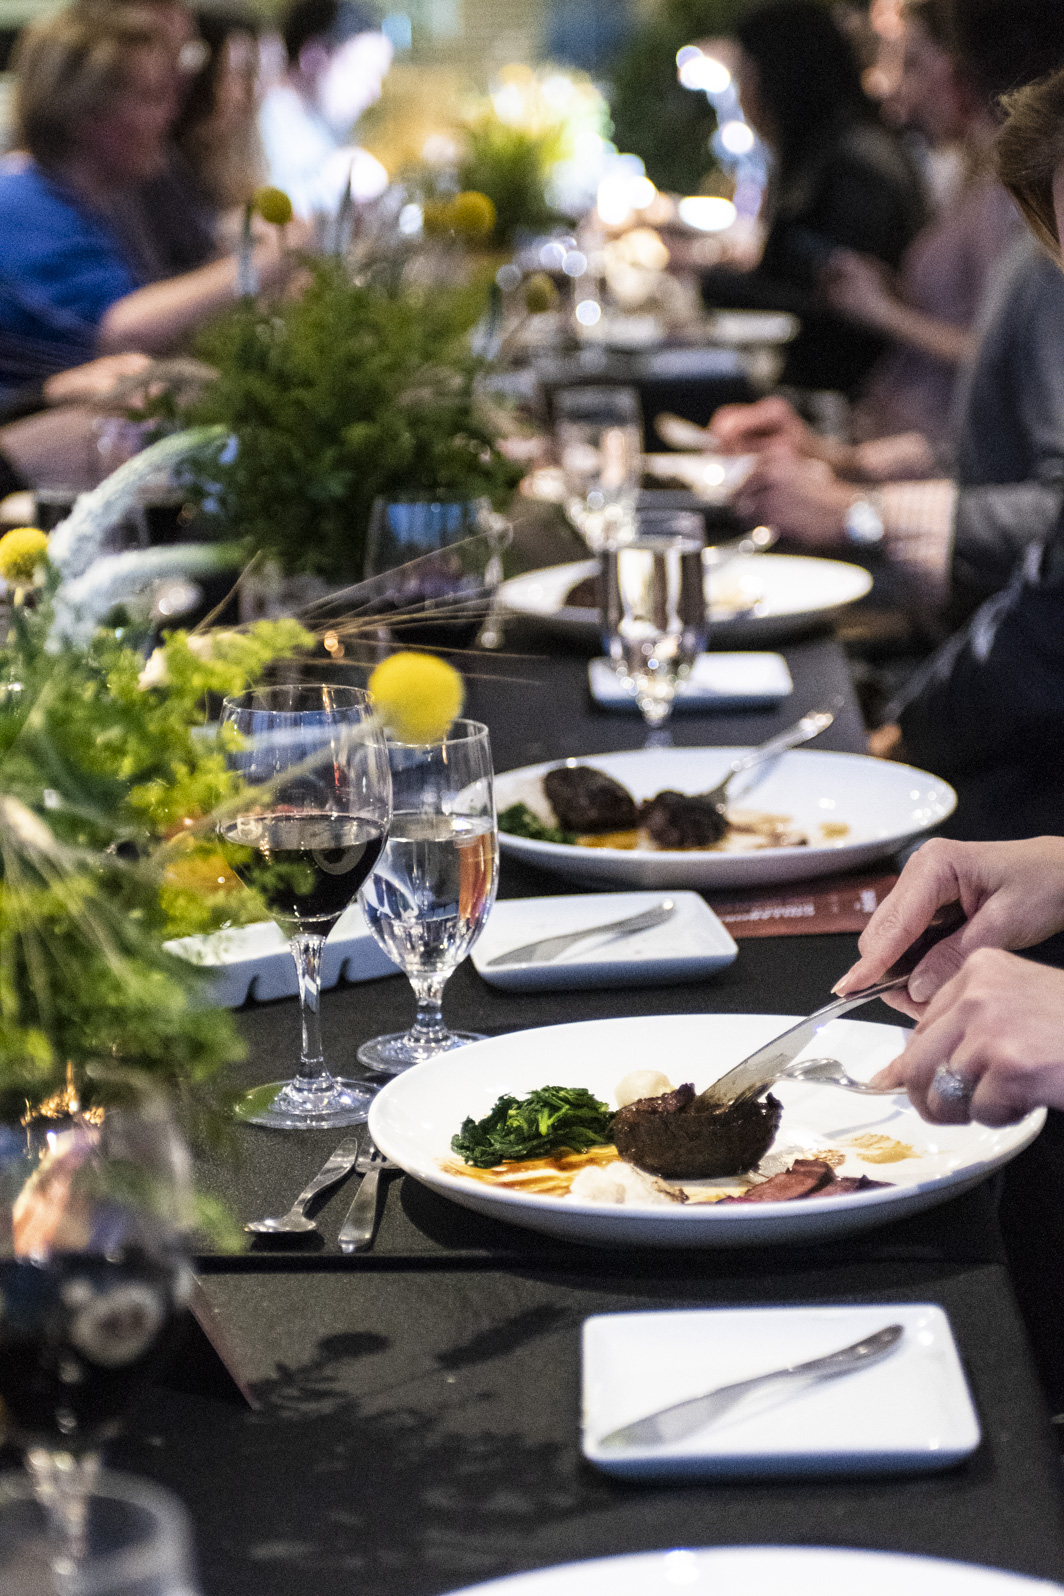 Guests enjoying Brant Lake Wagyu Beef Tongue and Cheeks during Collaborative Dinner with celebrity Chef Anita Lo.